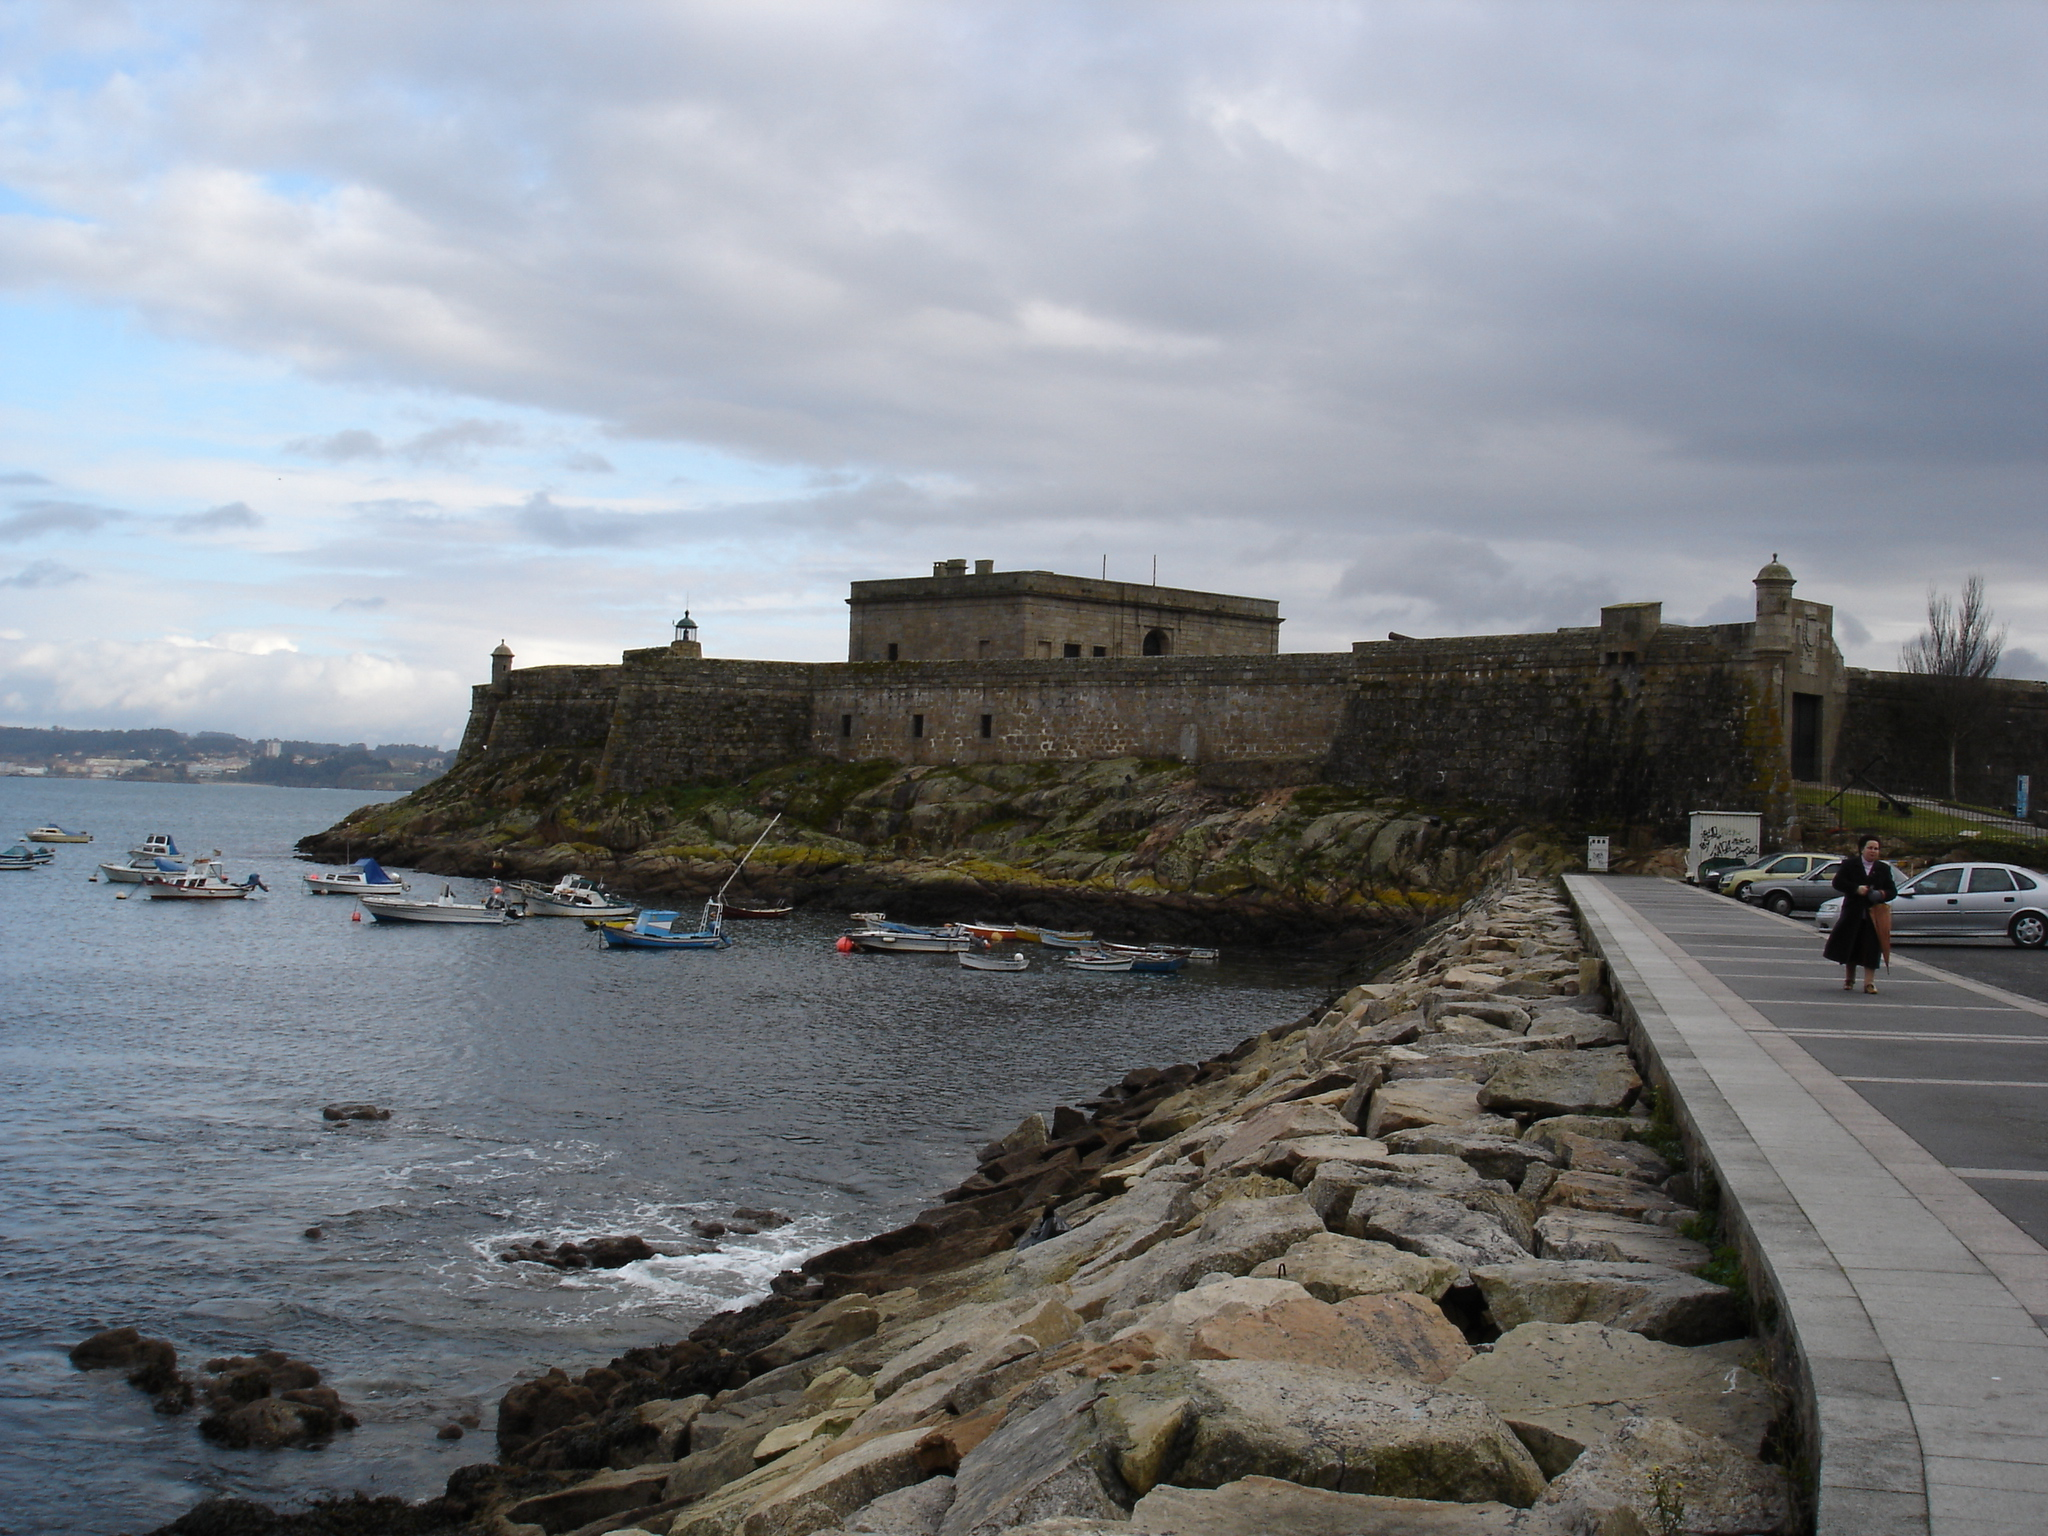 La Coruna Spain  City pictures : Description San Anton castle, La Coruna, Spain